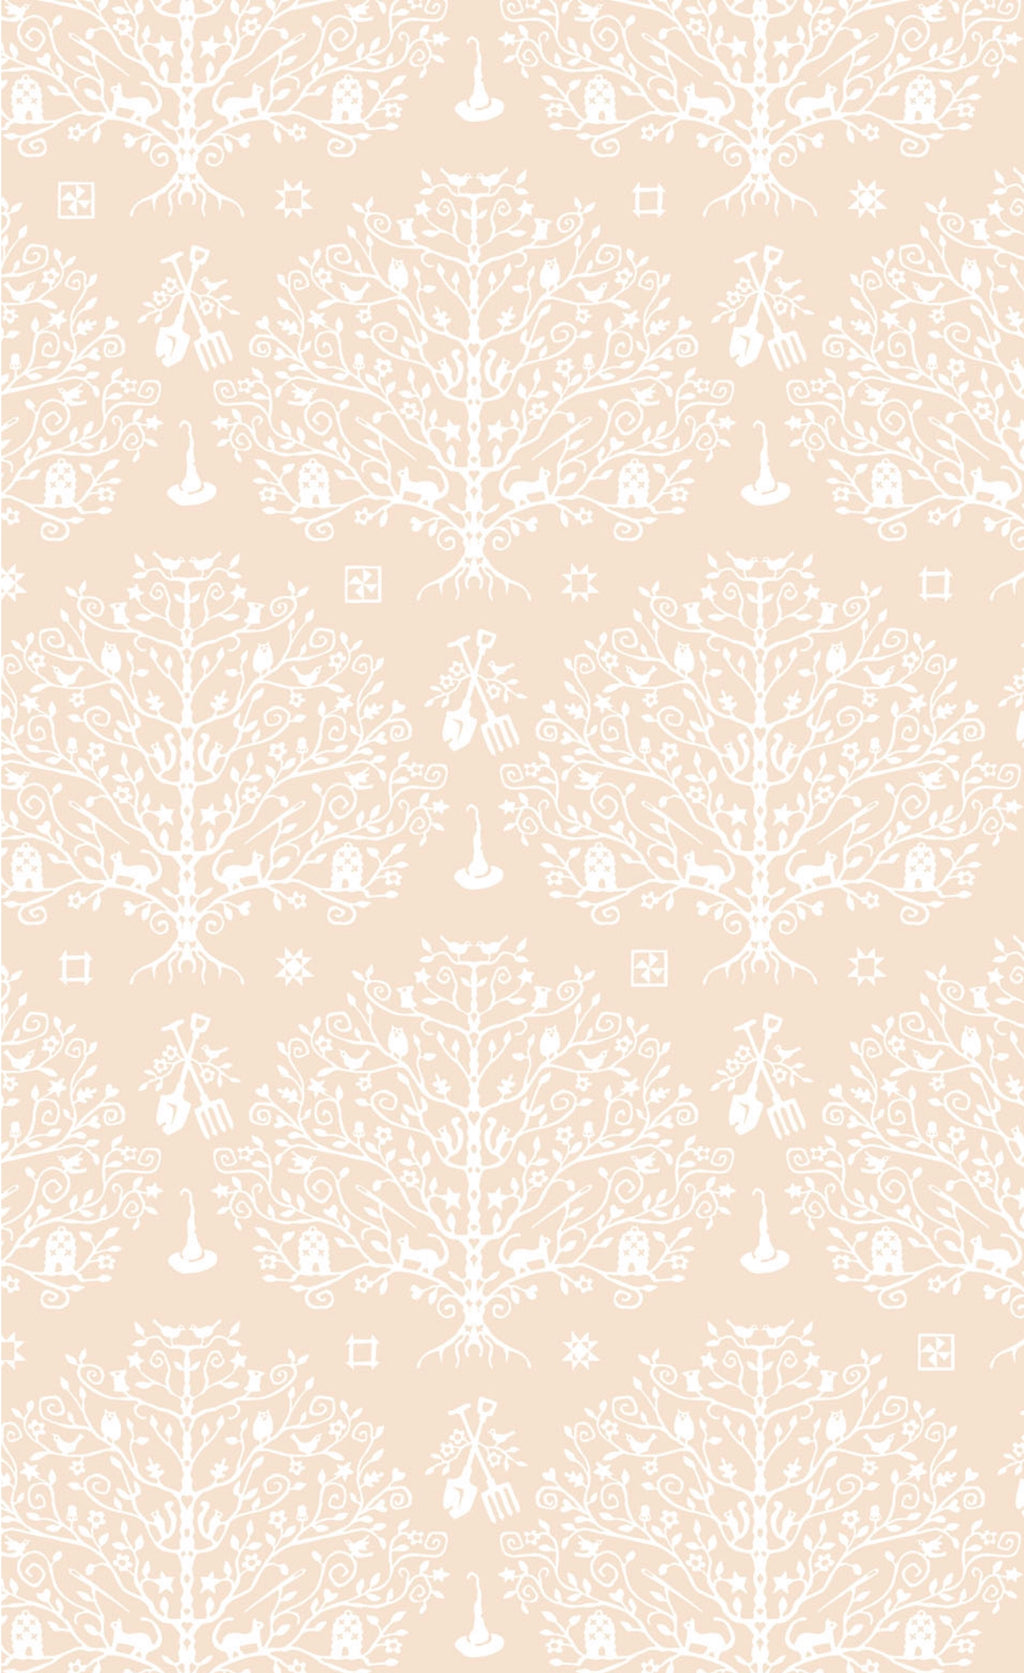 PAPER CUT TREE - CREAM from the Spellcasters Garden Fabric Line, Toad Hollow Fabrics